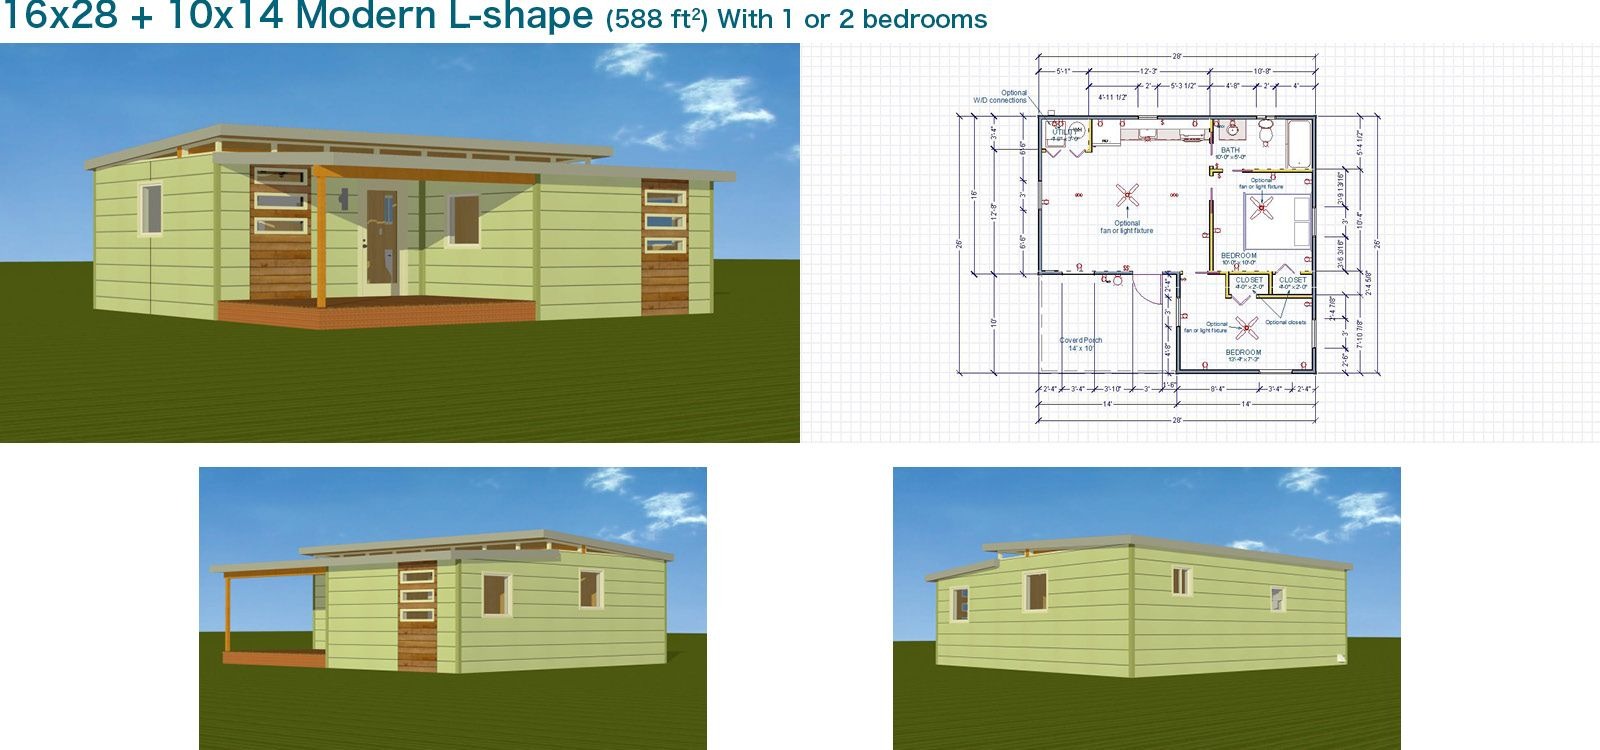 16x28 10x14 modern l shape kangaroom systems cabin and